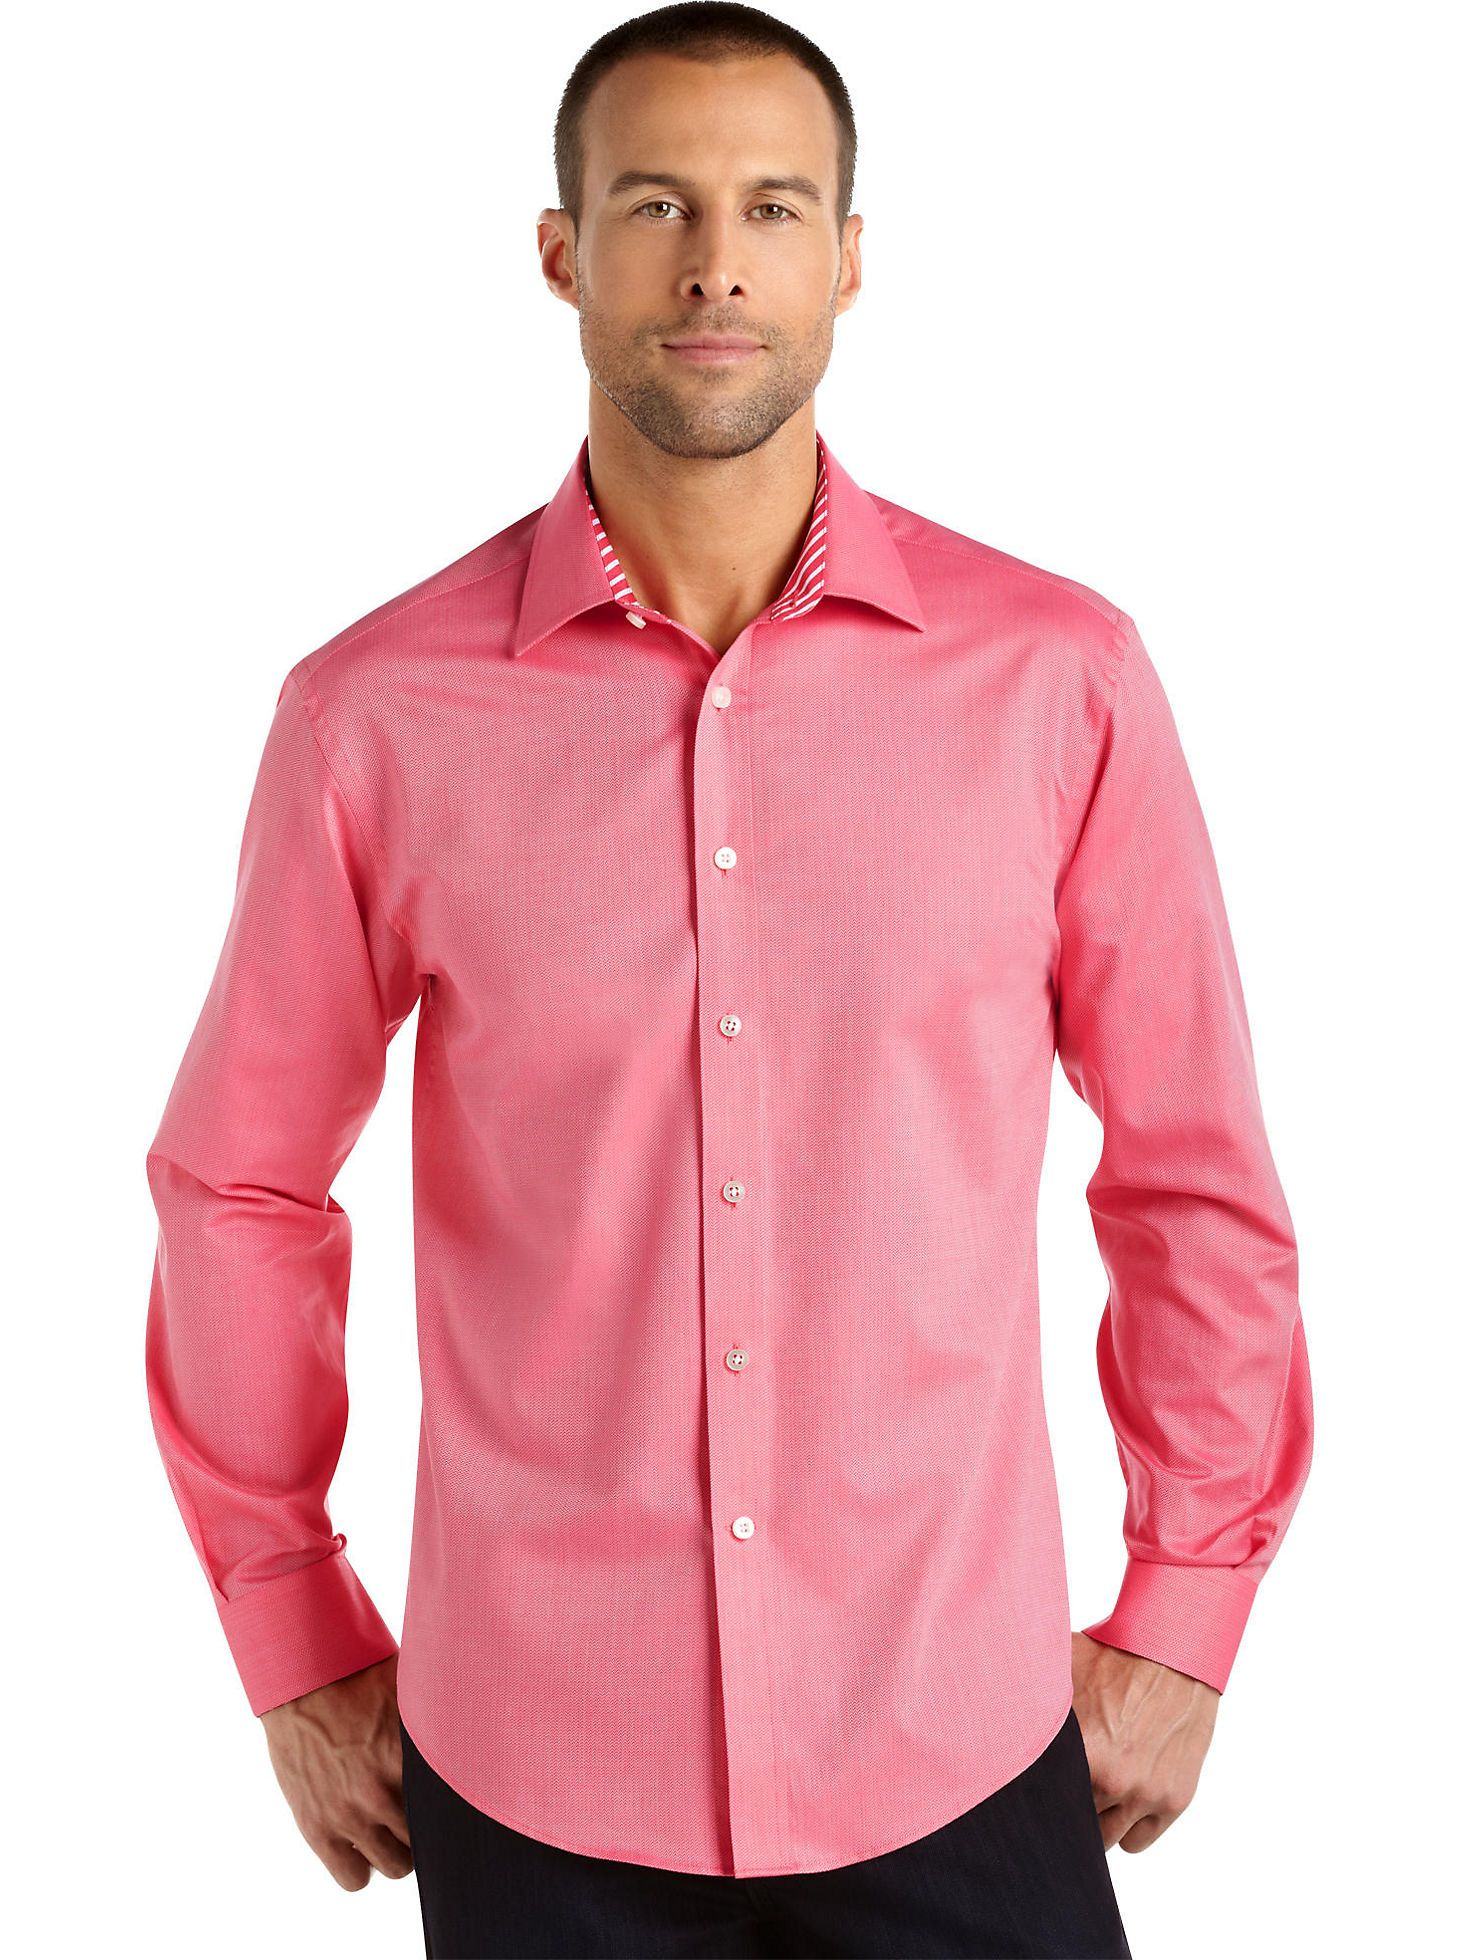 To establish a casual look at any event wear your shirt for Untucked dress shirt with tie